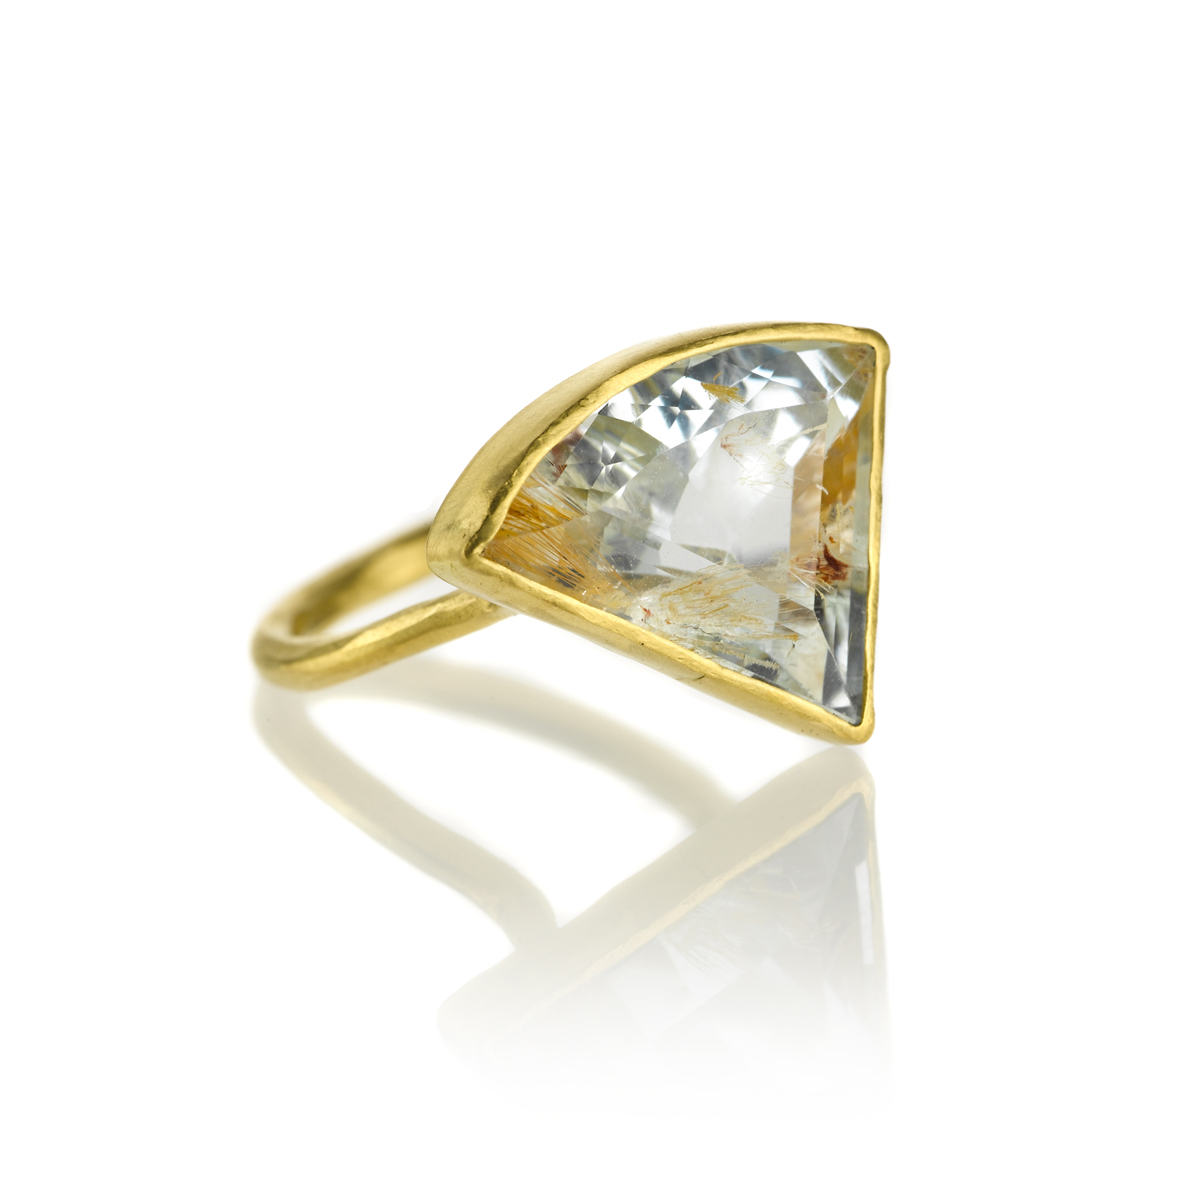 Loving the shape of this 22k gold ring with rutilated topaz,$3,720.